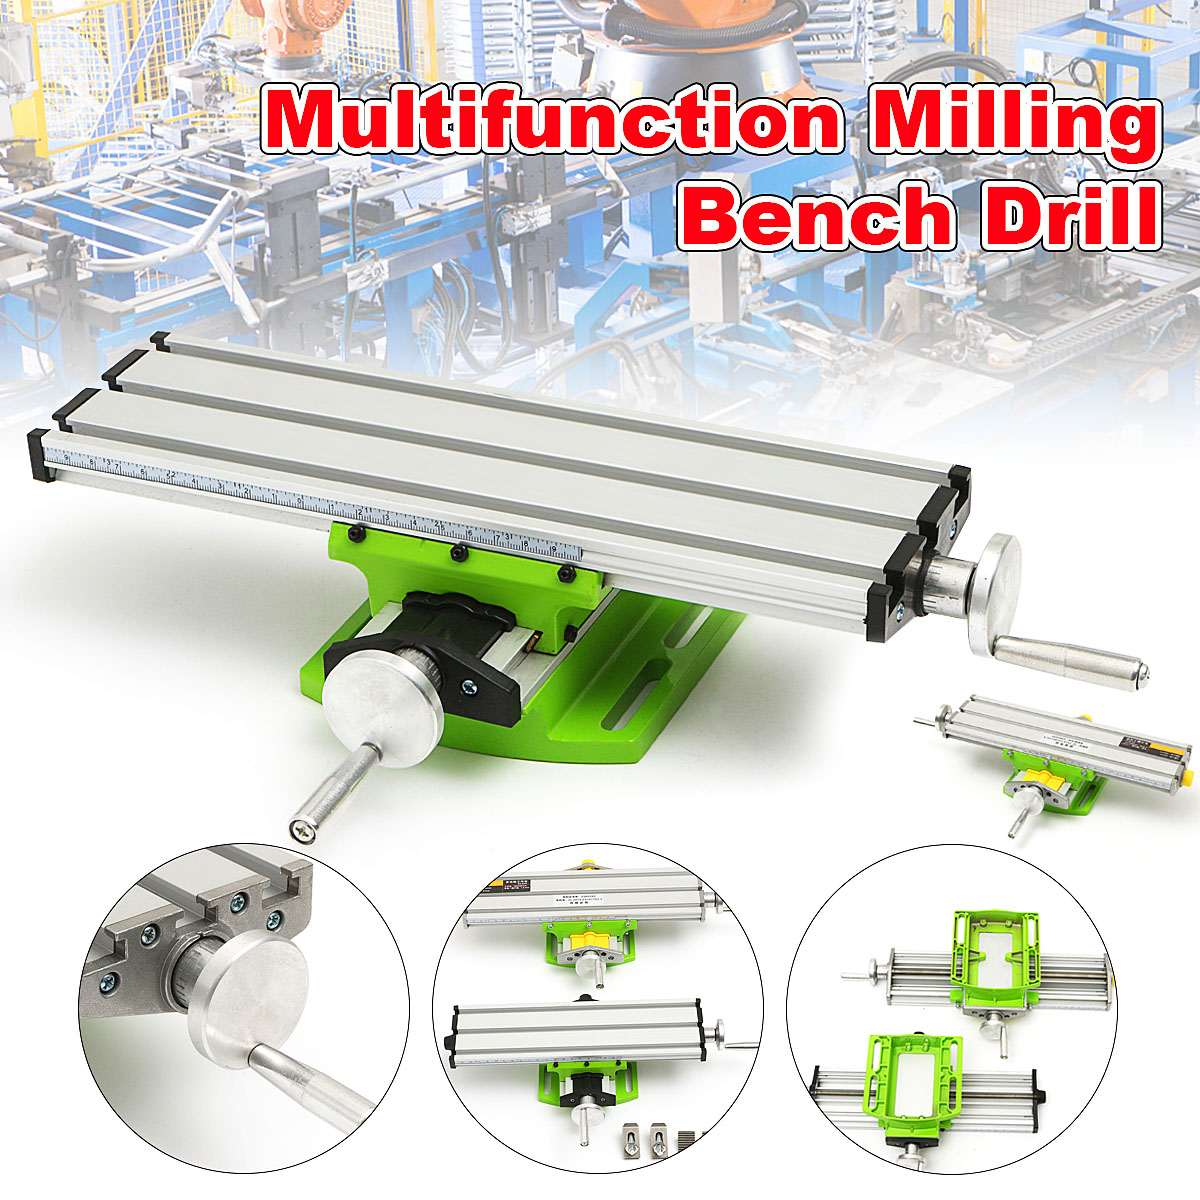 New 2 Axis Compound Cross Slide Working Table Adjustment X-Y Milling Working